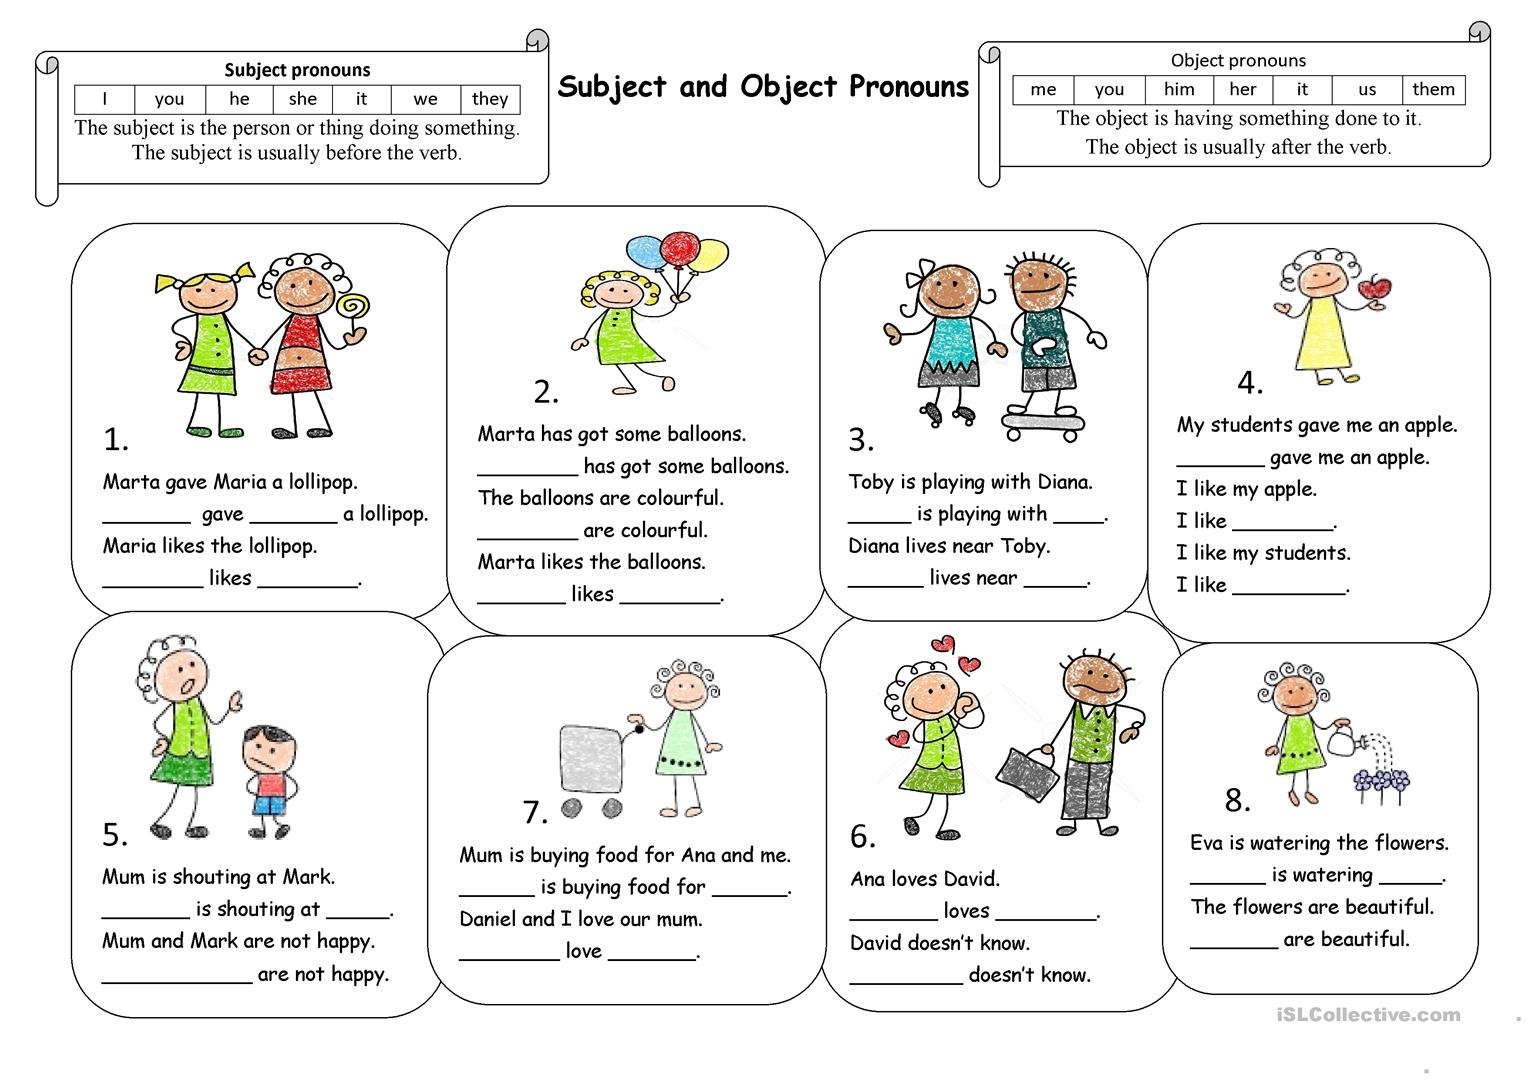 Greetings In Spanish Worksheet Word Subject And Object Pronouns Worksheet  Free Esl Printable  Anger Worksheets For Kids with Name Printing Worksheets Excel Full Screen 3 Year Old Worksheets Excel